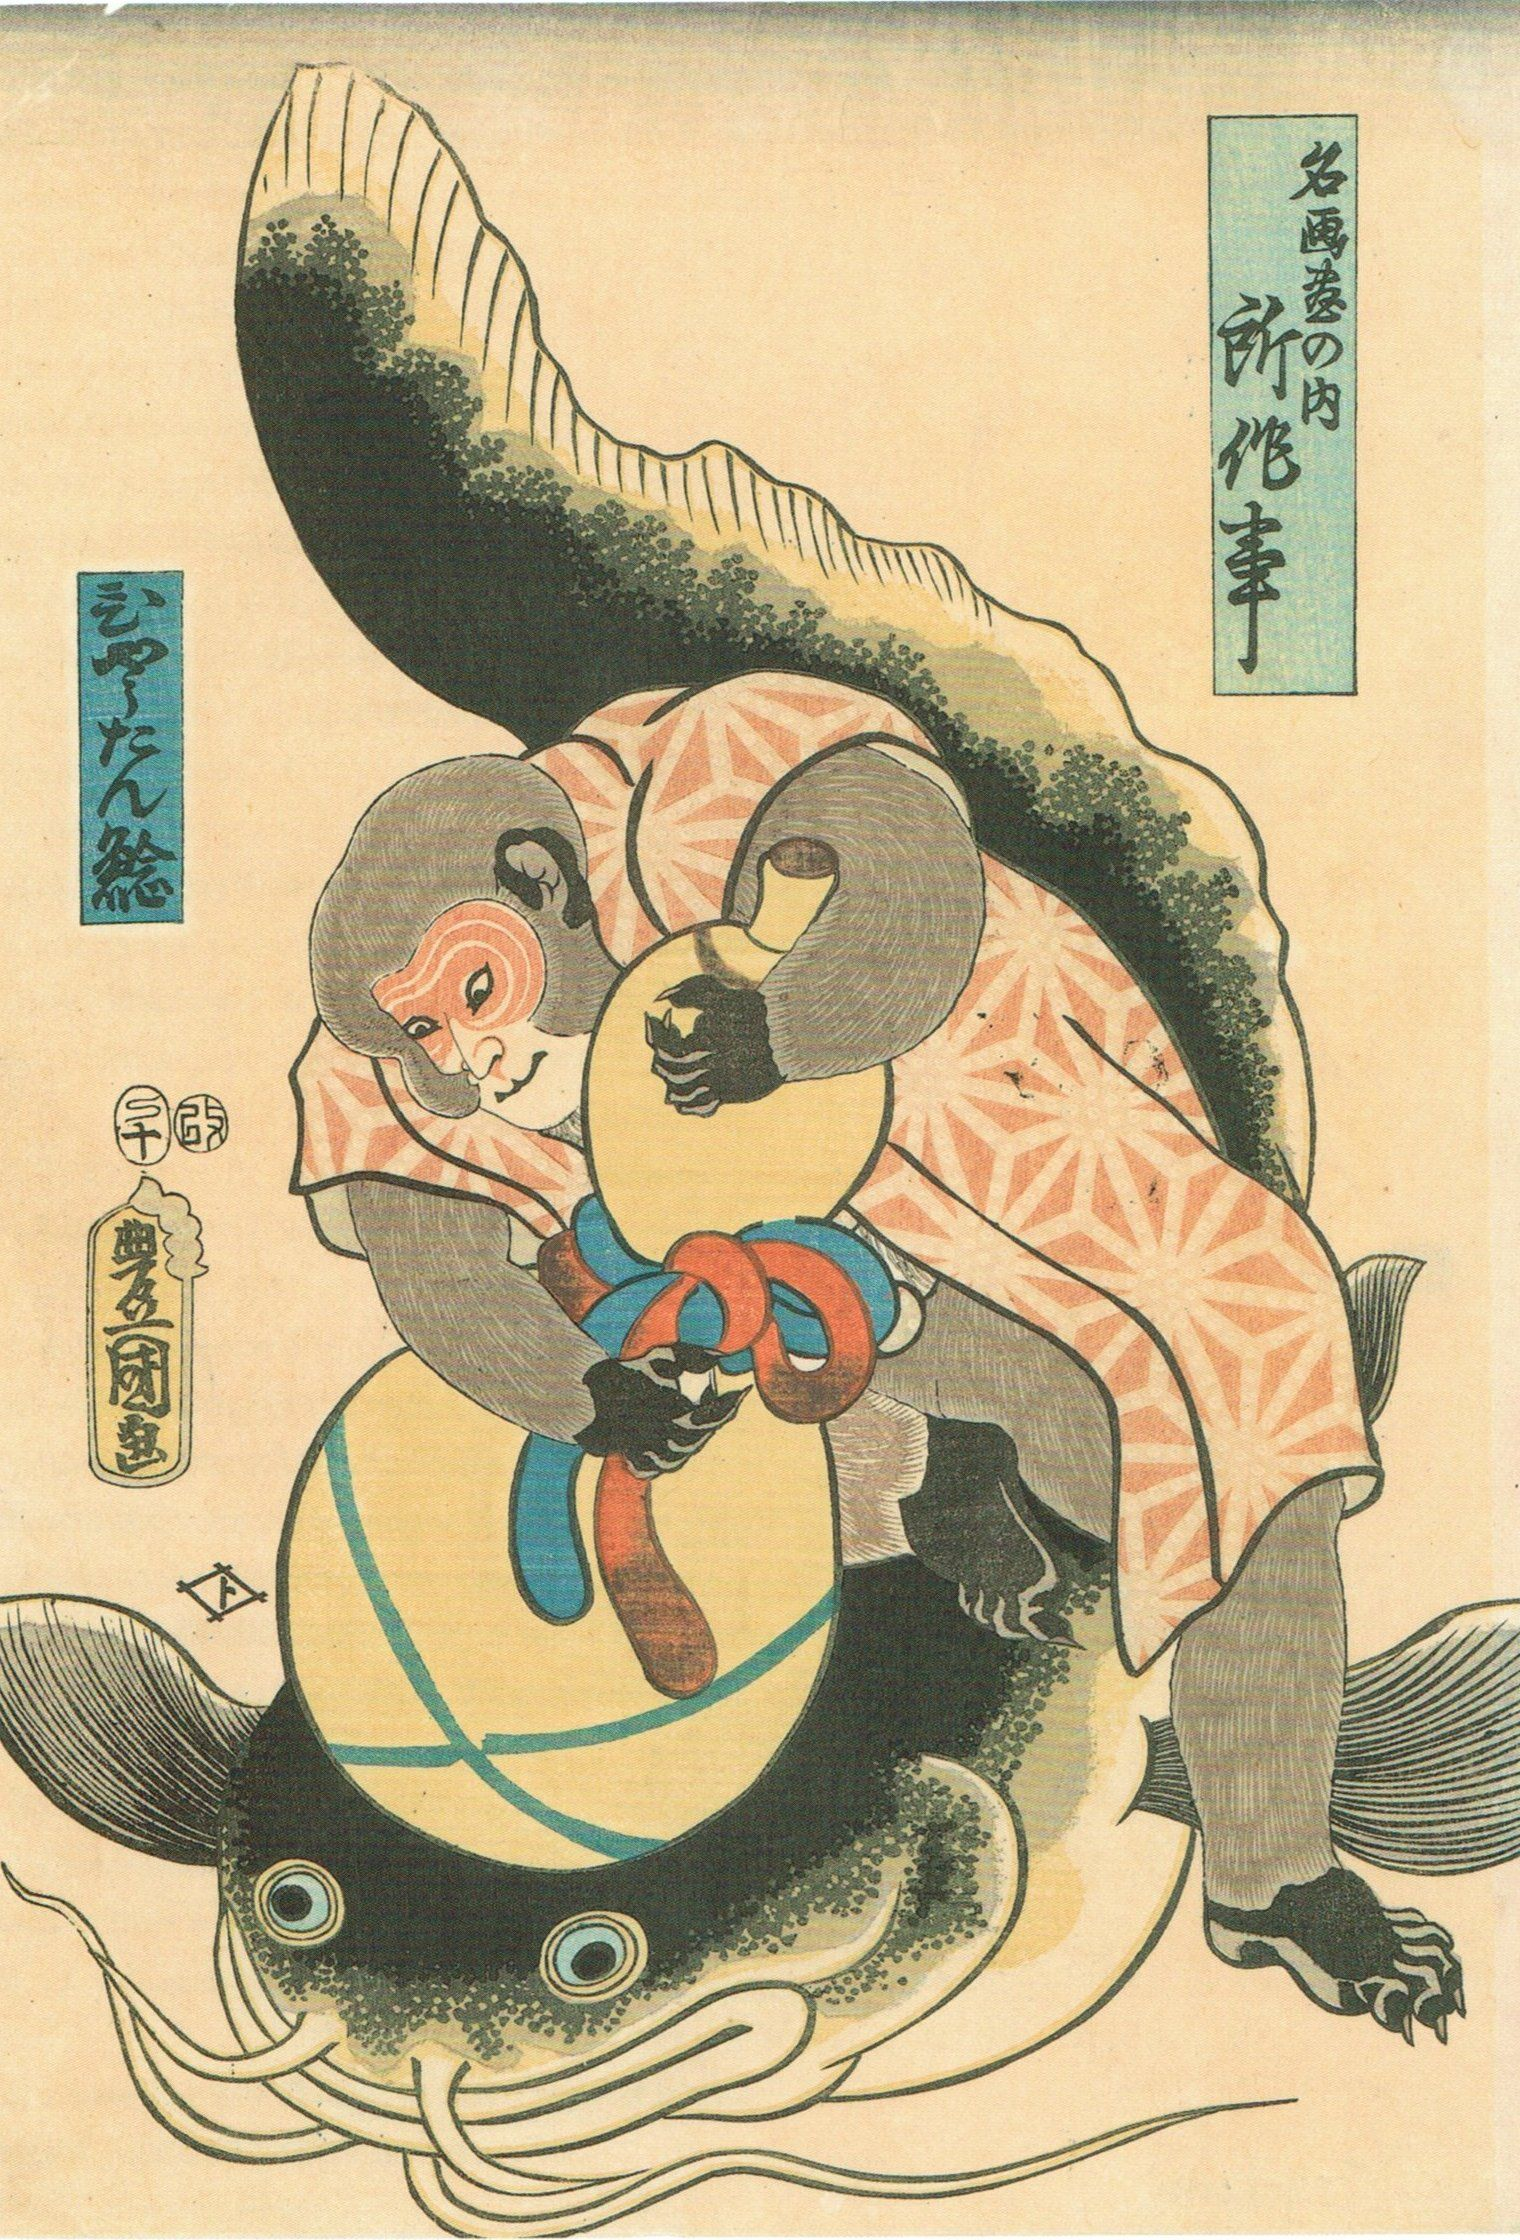 interpretation of the japanese saying trying to catch a catfish with a gourd by kunisada utegawa following the great ansei earthquake of 1855 ナマズ 日本の民話 絵